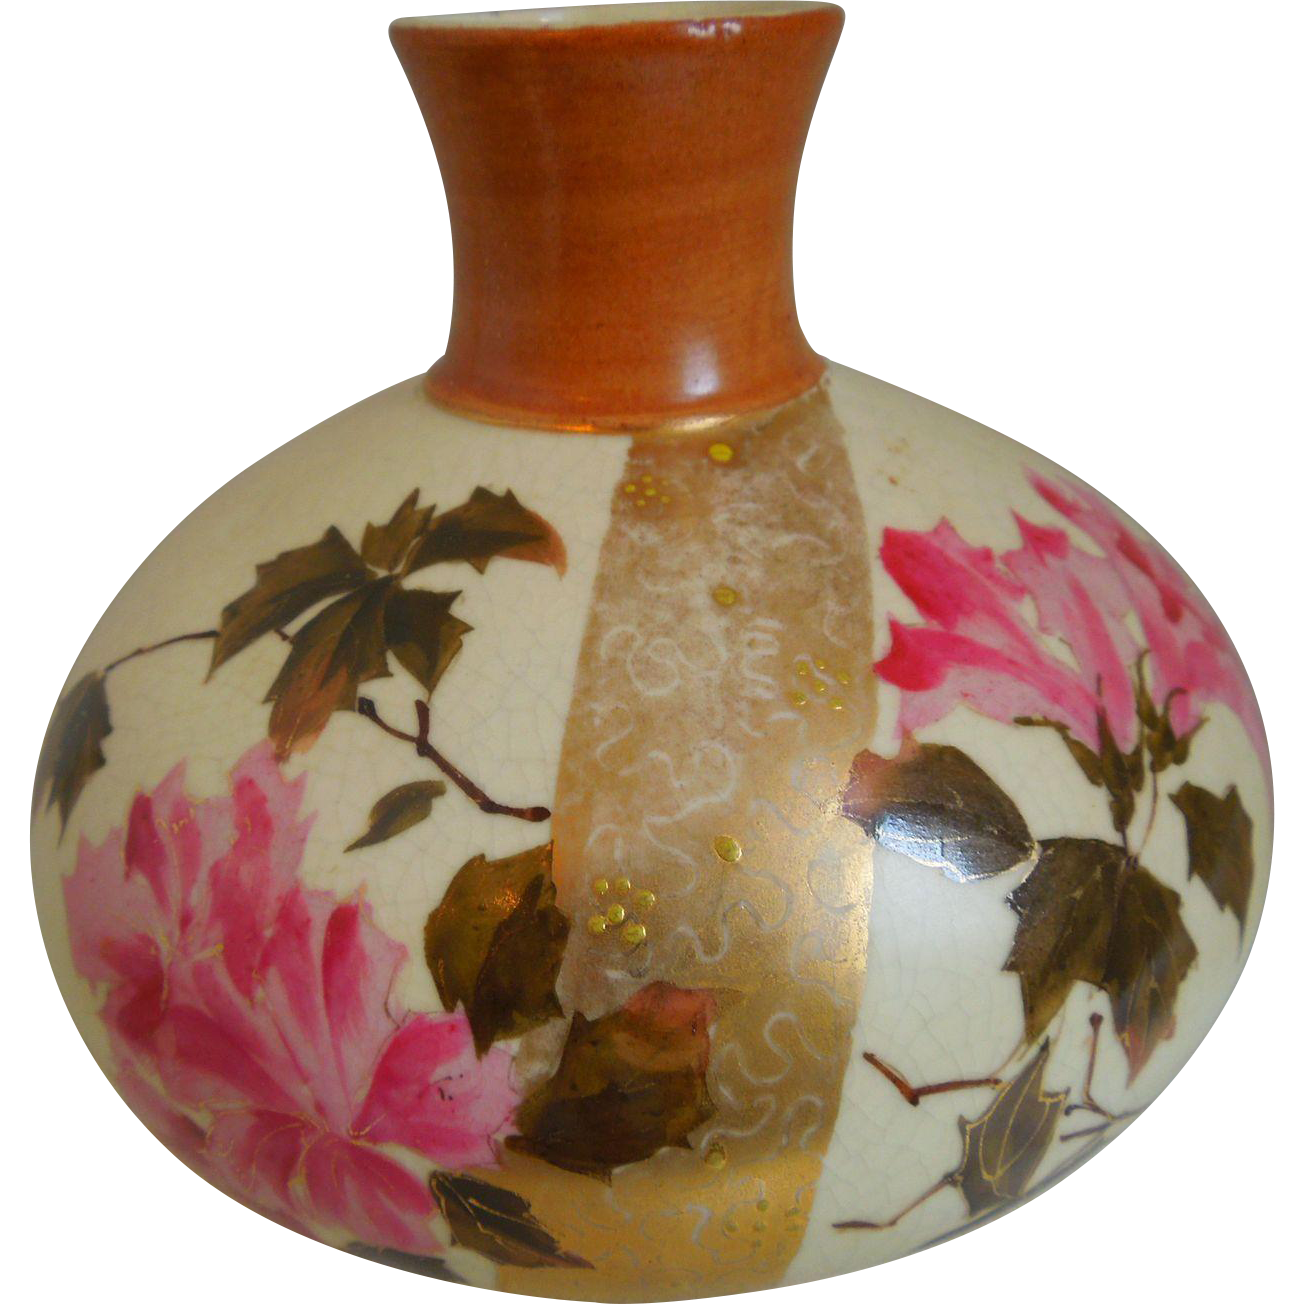 19th Century Art Nouveau, A. Stellmacher, Turn Teplitz, Aesthetic Movement, Hand Painted, Porcelain Vase With Flowers